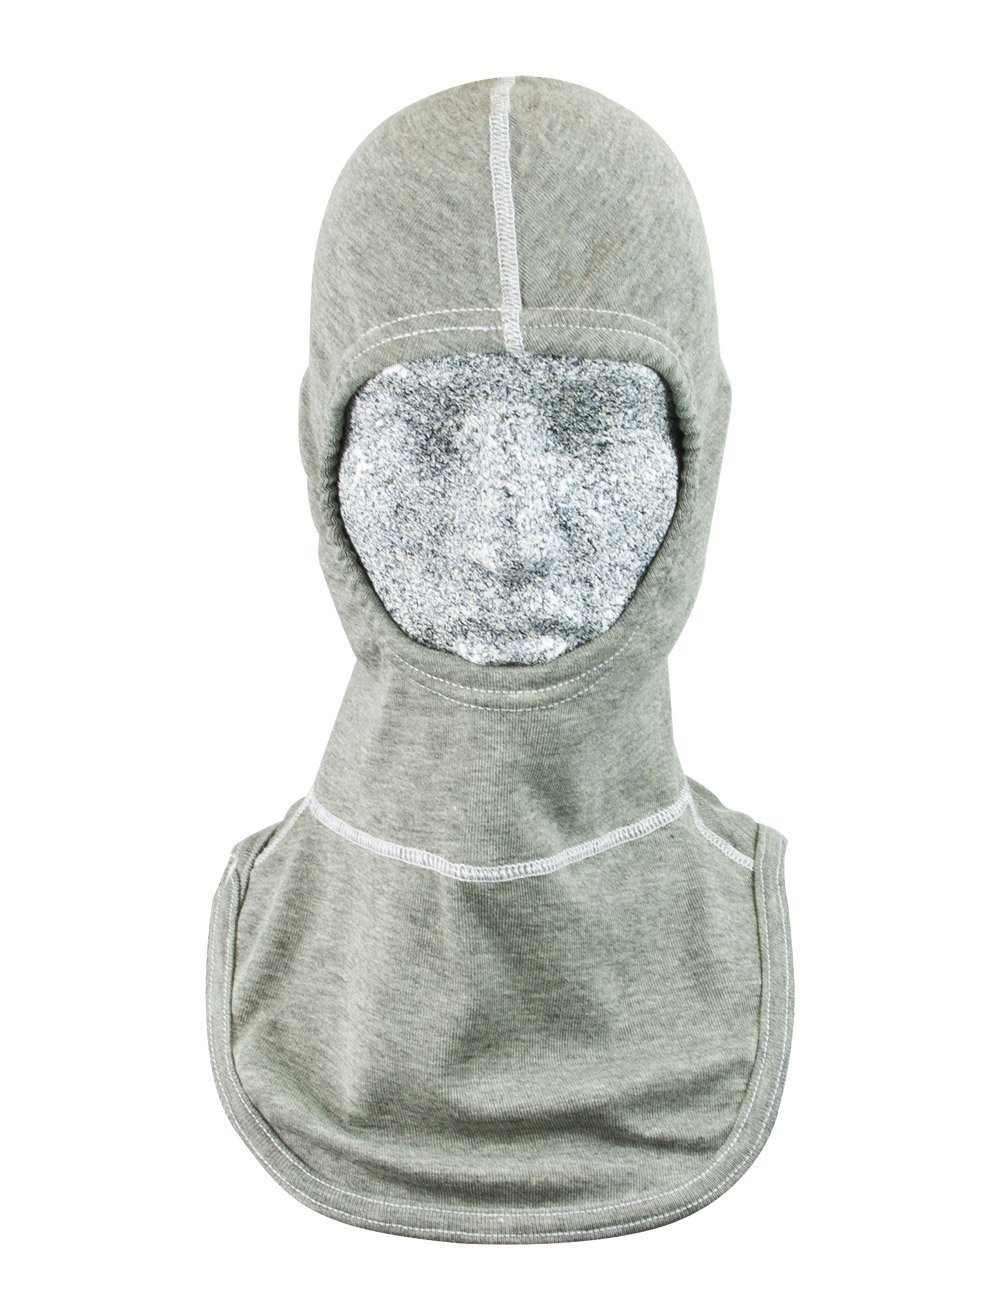 PGI 3092093 Fire Fighting and Arc Resistant Hood, Cobra Double Ply Hood with Single Ply Bib, para-Tek Fr Tri-Blend, One Size, Heather Gray